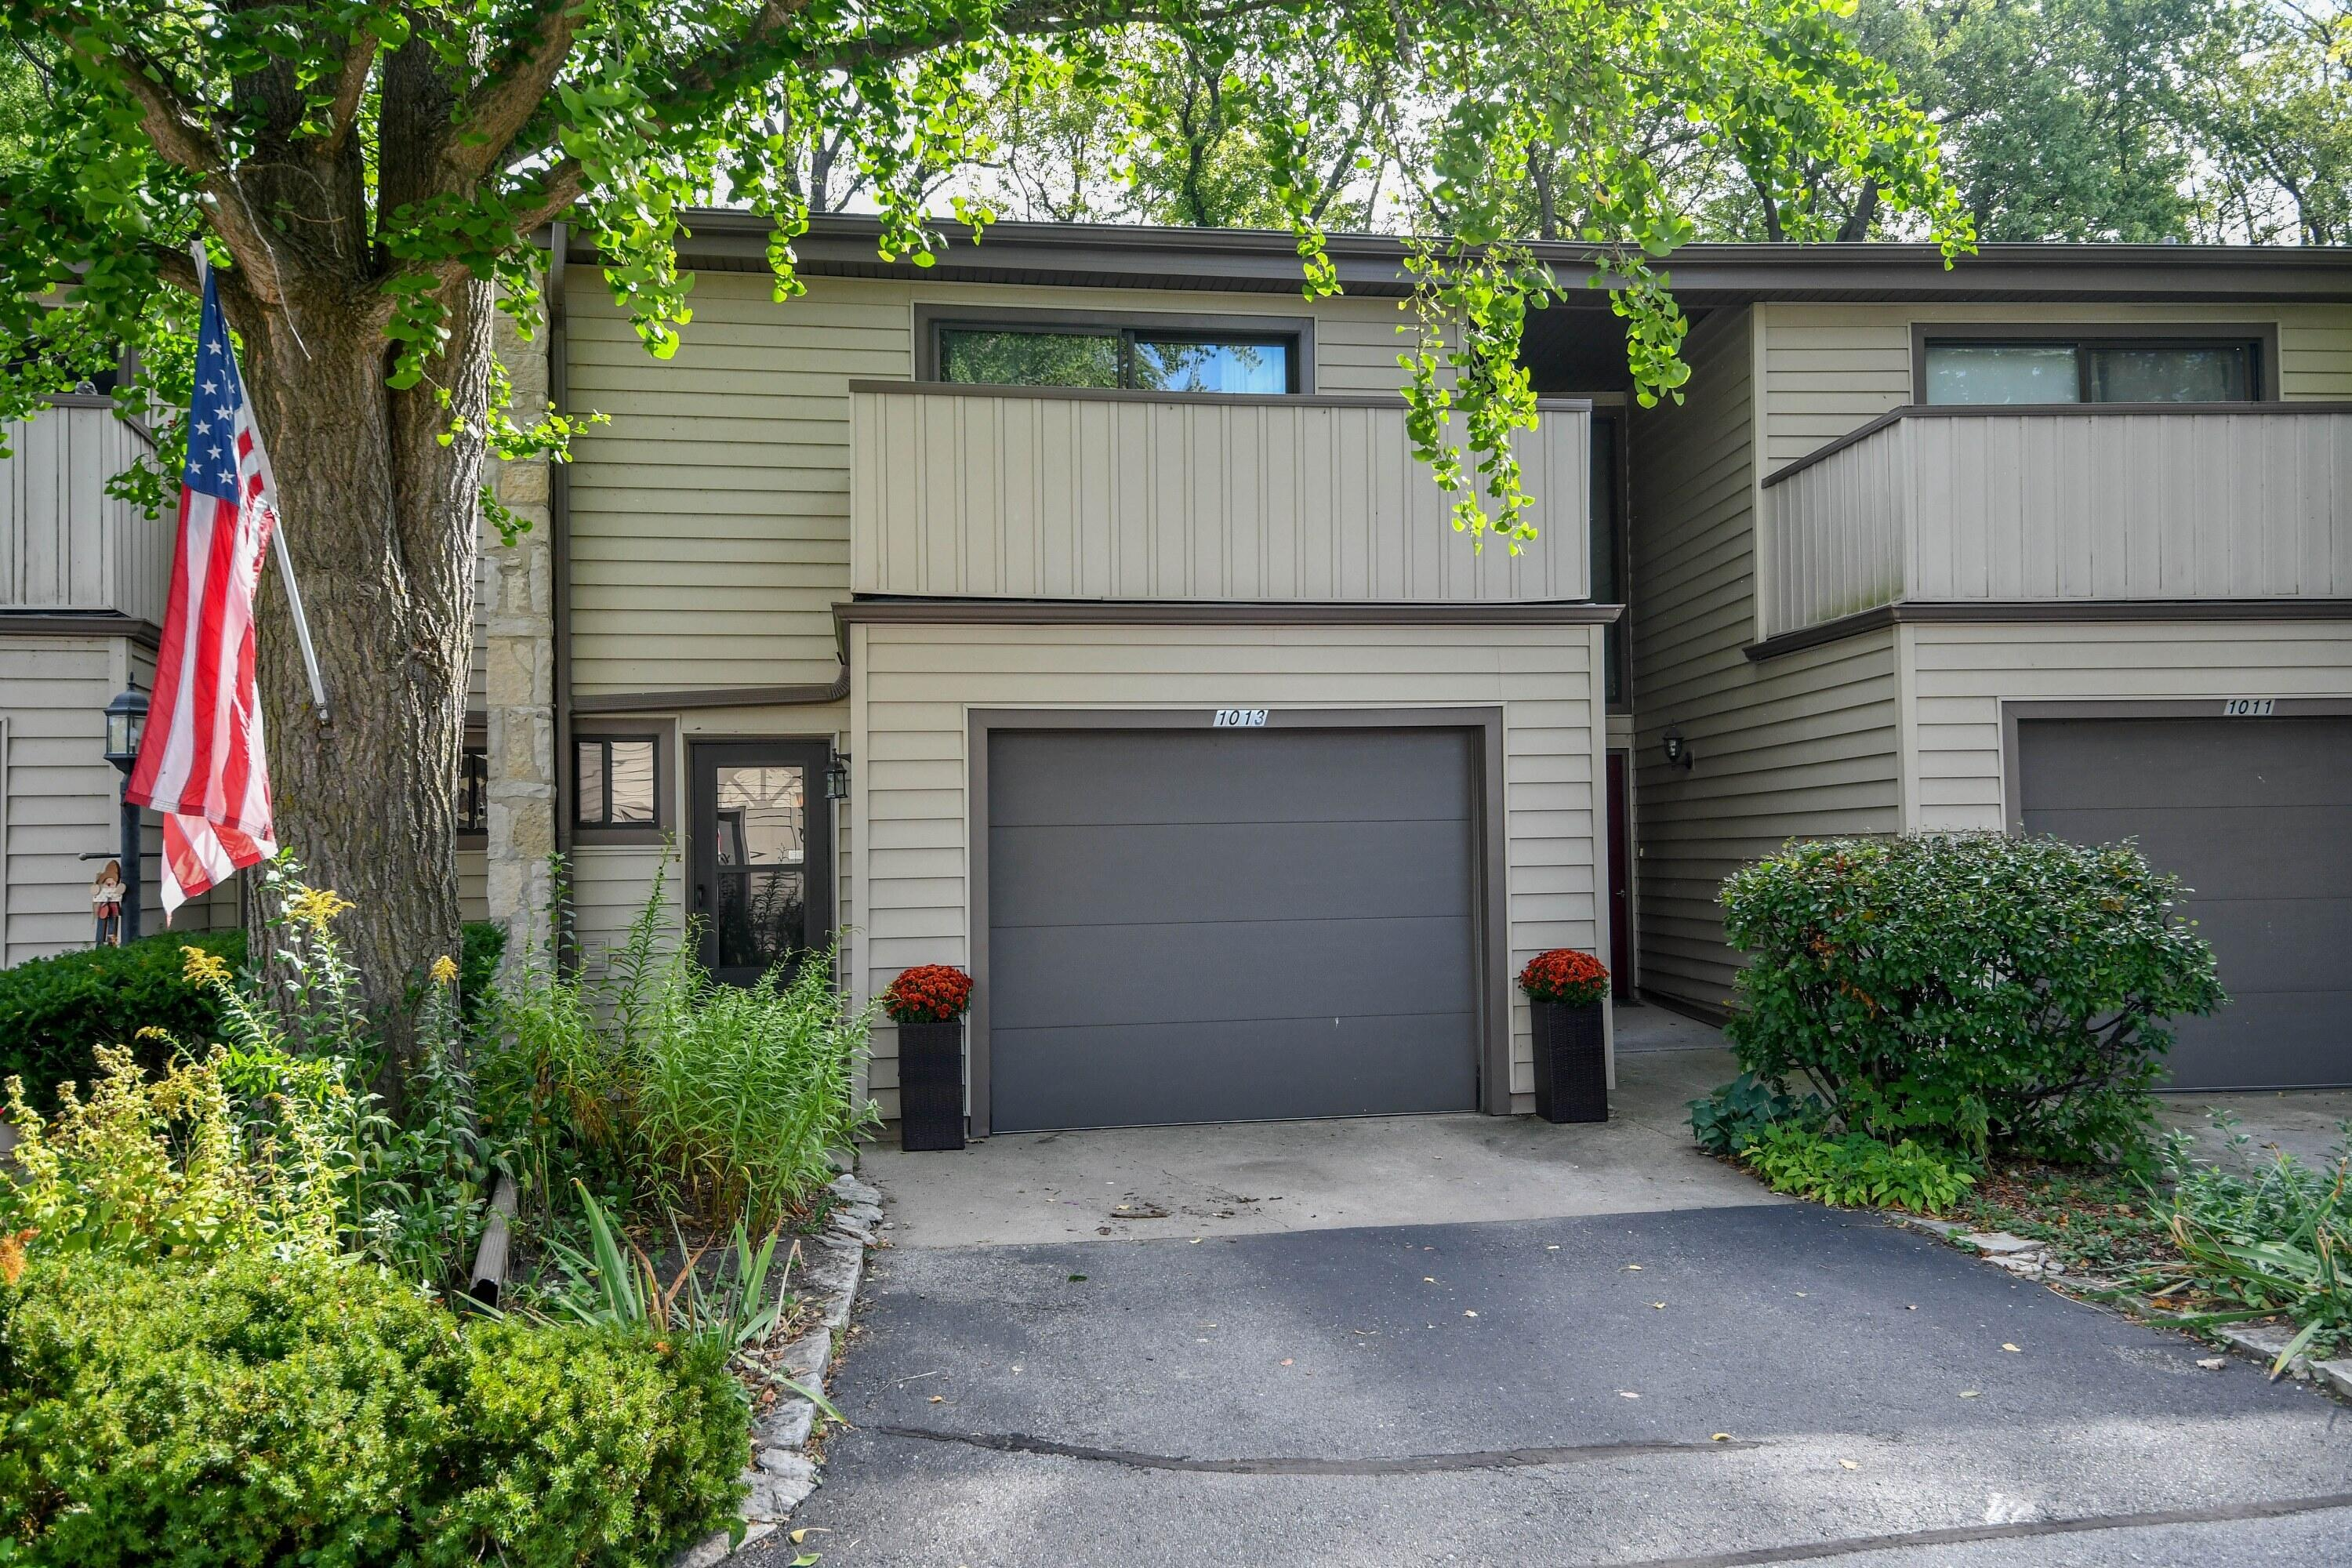 1013 Lake Country Ct, Oconomowoc, Wisconsin 53066, 3 Bedrooms Bedrooms, 7 Rooms Rooms,1 BathroomBathrooms,Condominiums,For Sale,Lake Country Ct,1,1766786